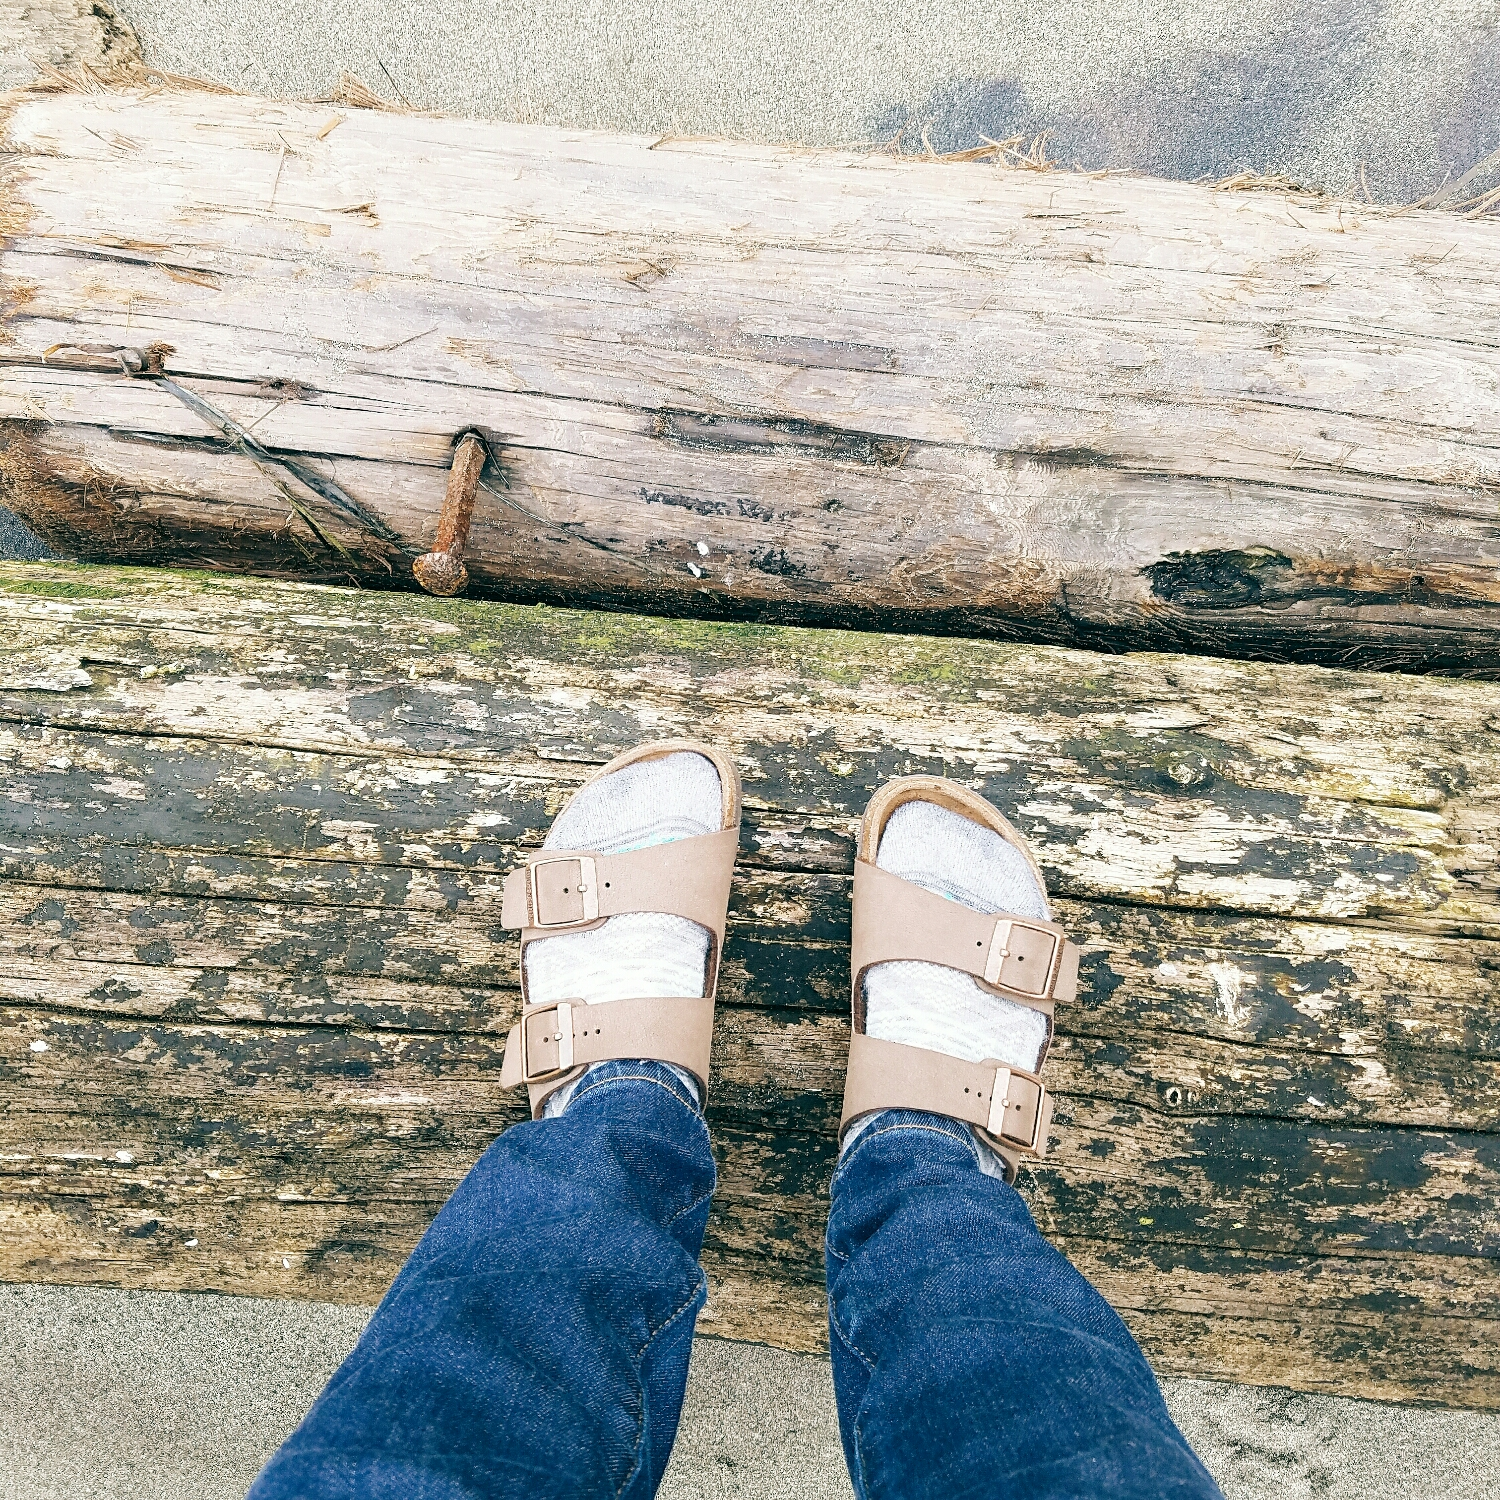 sandals & socks - the perfect beach look!